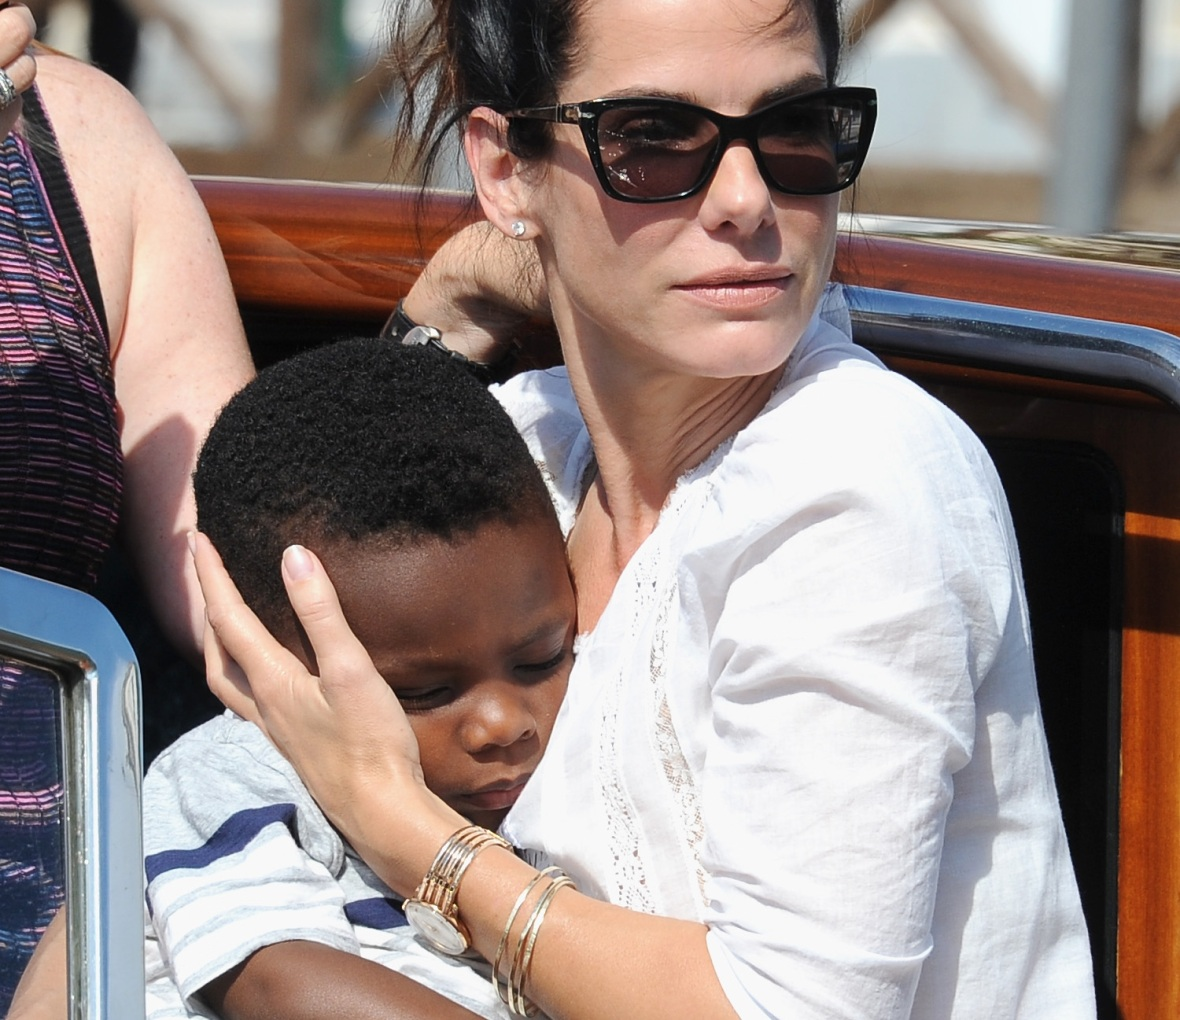 sandra and her son louis getty images